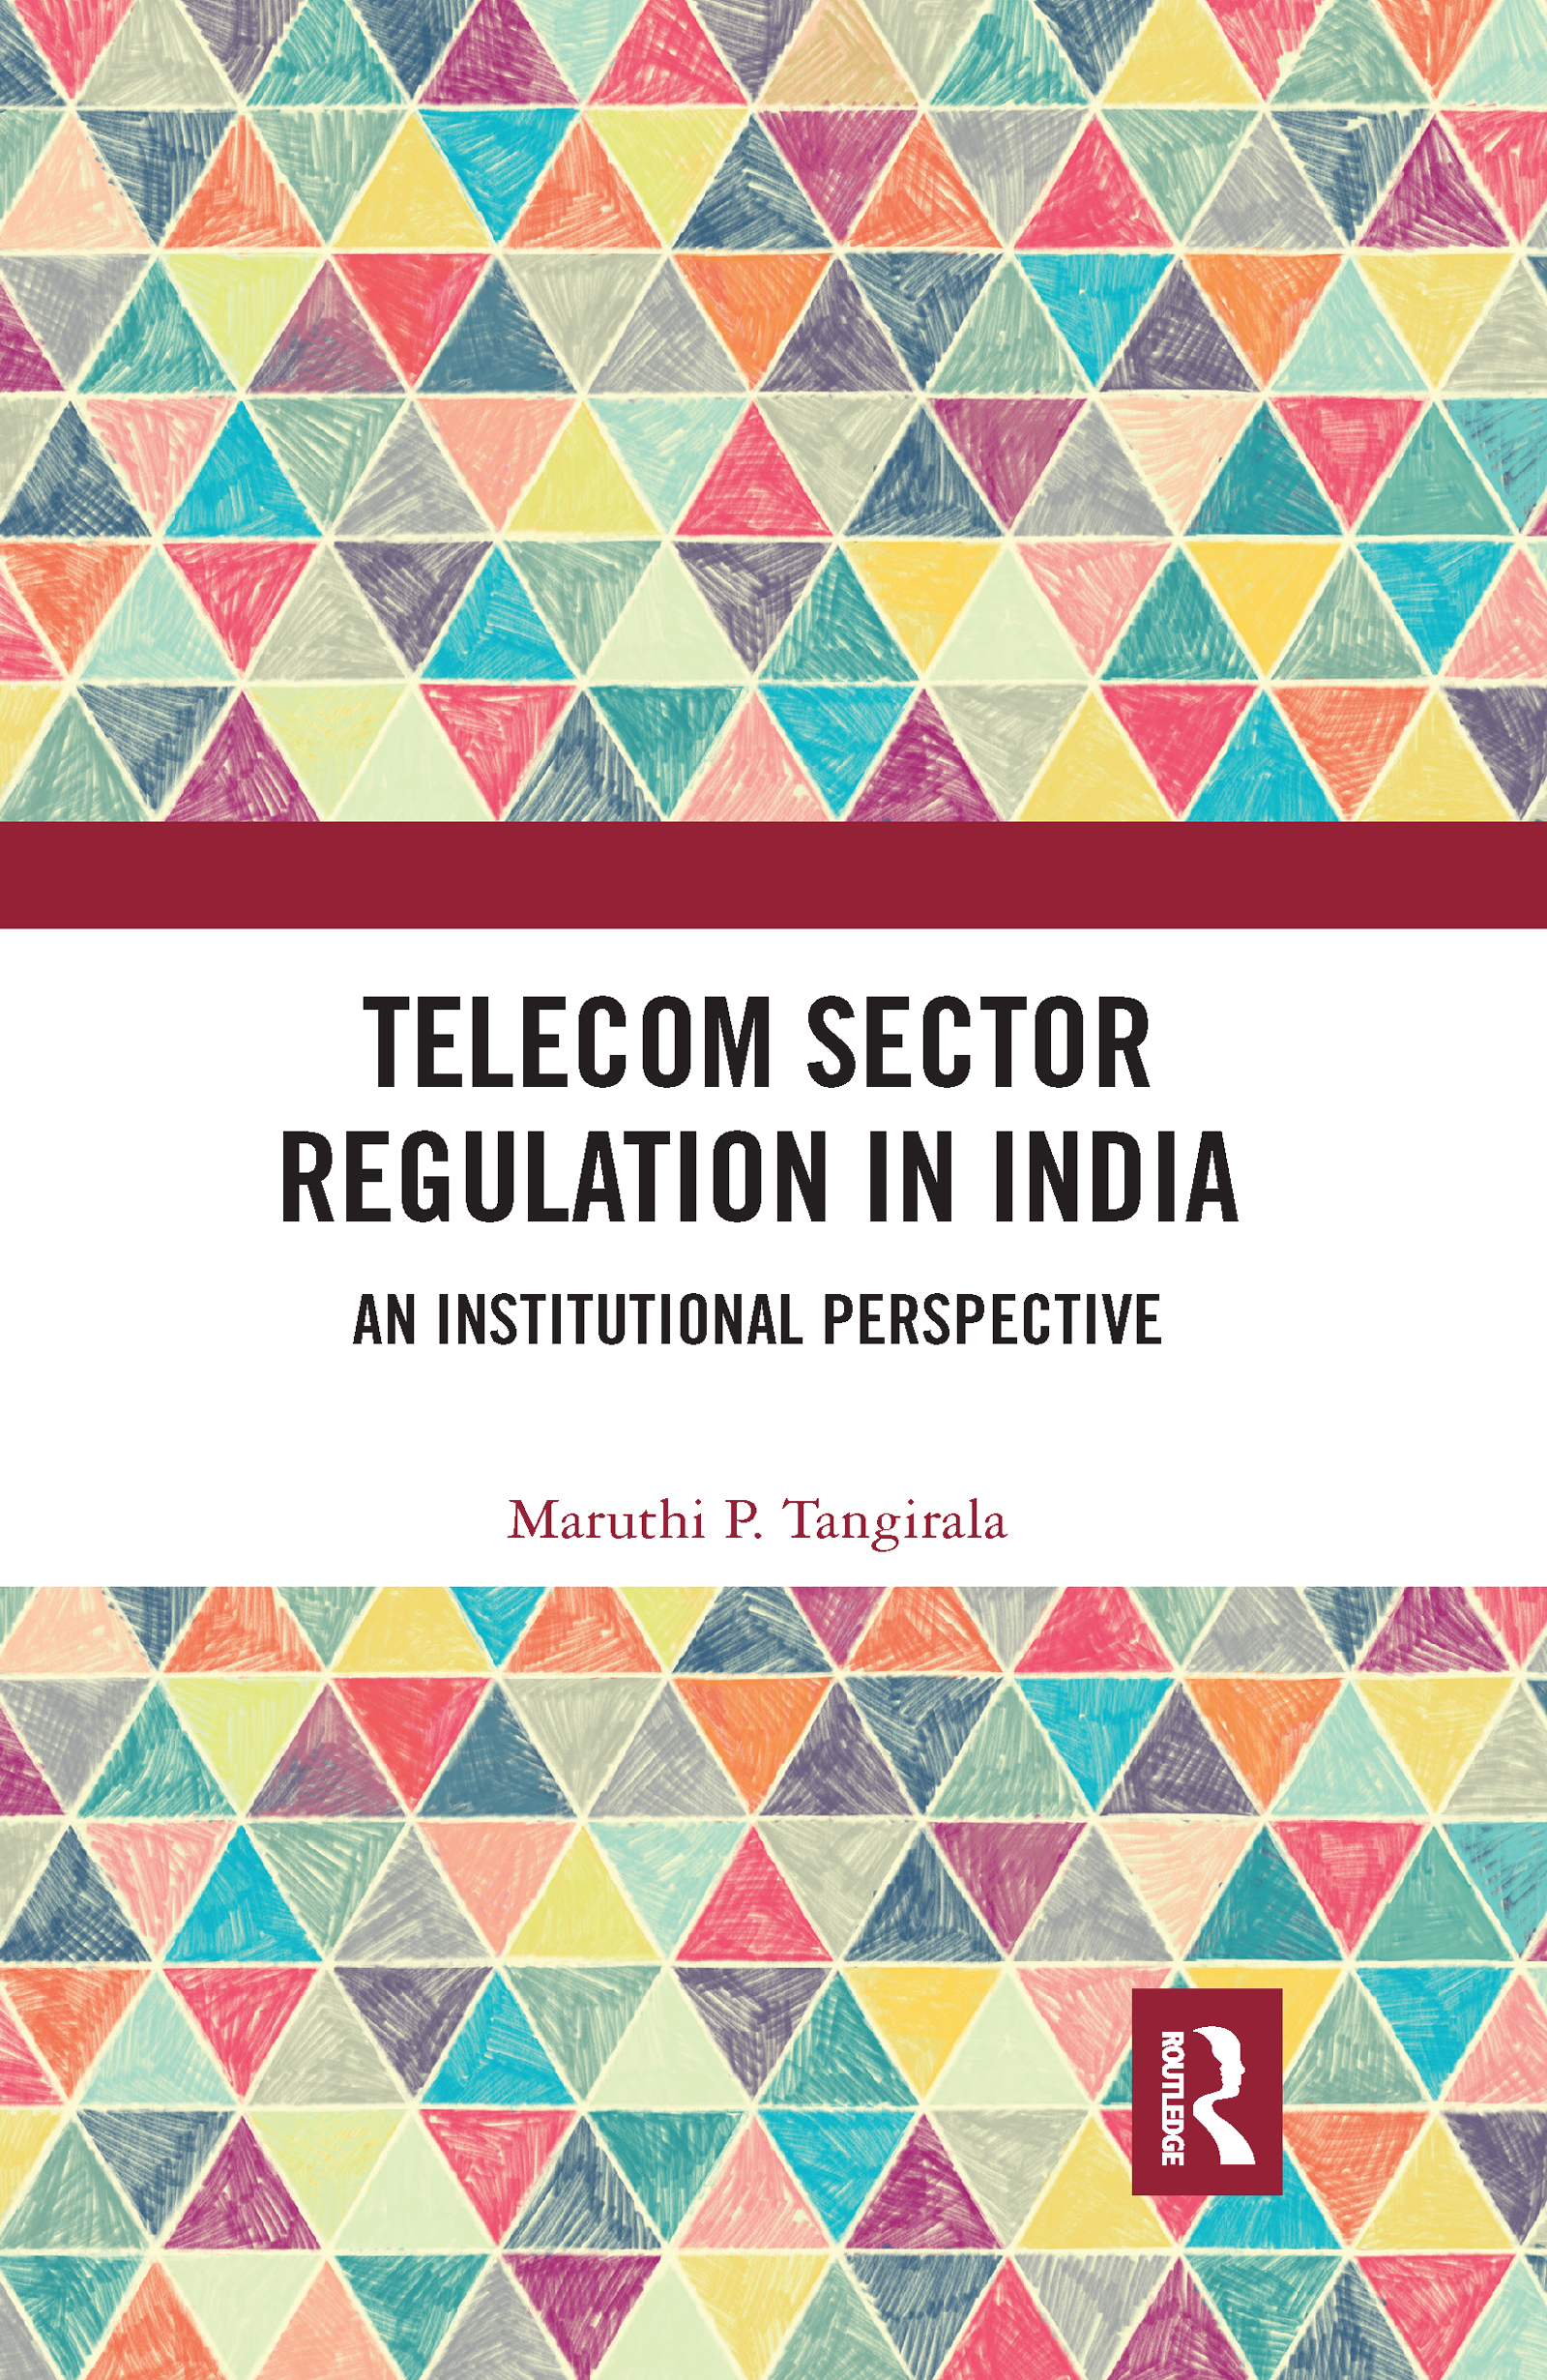 Telecom Sector Regulation in India